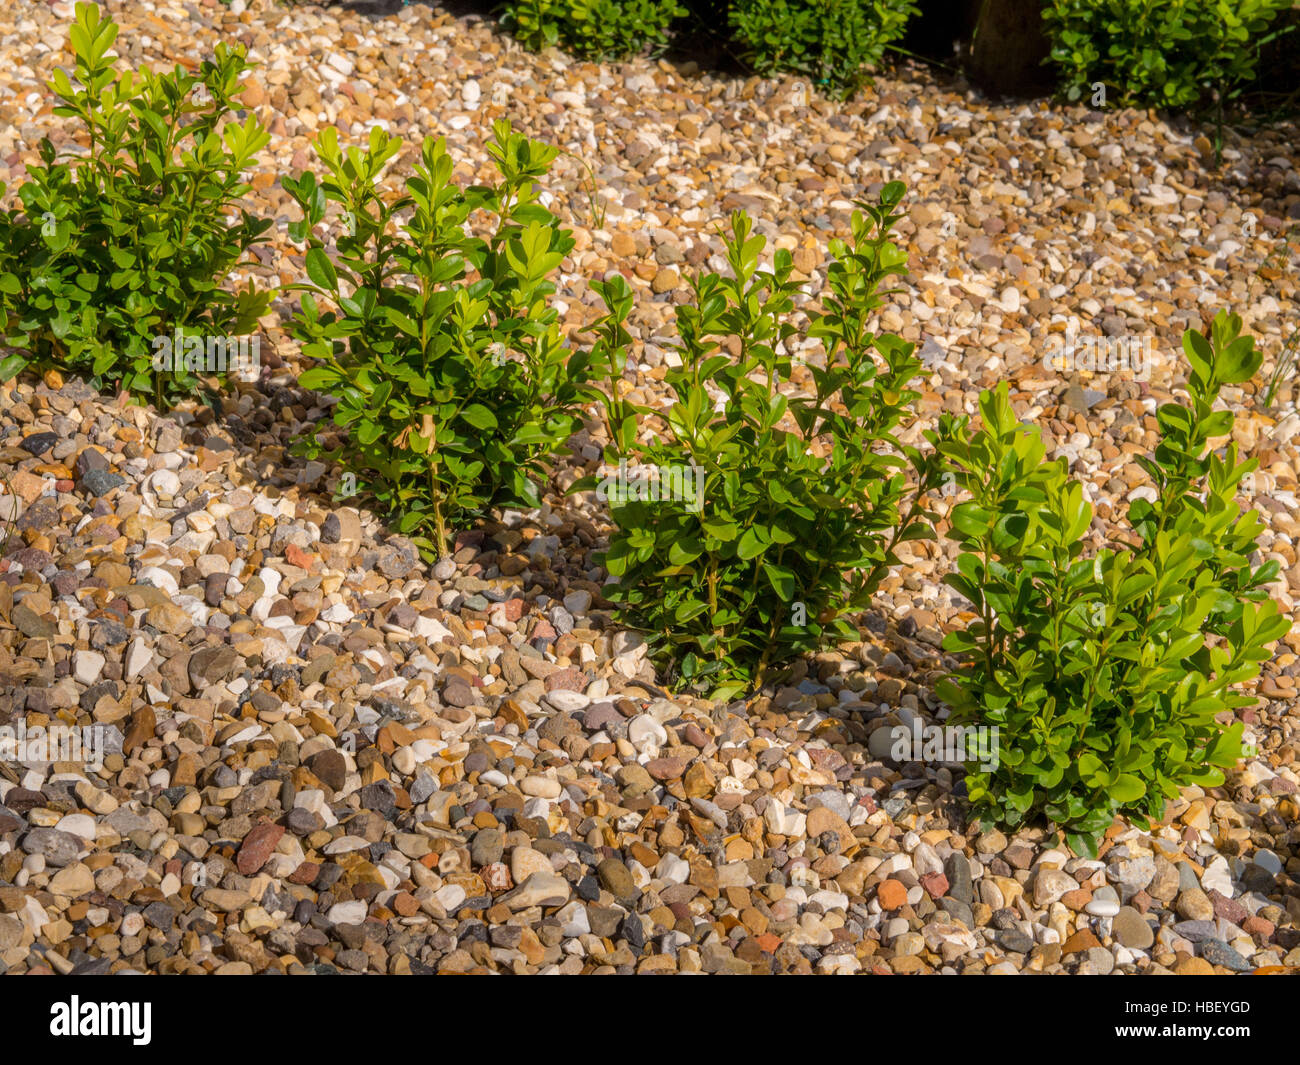 Young box hedging plants in gravel - Stock Image